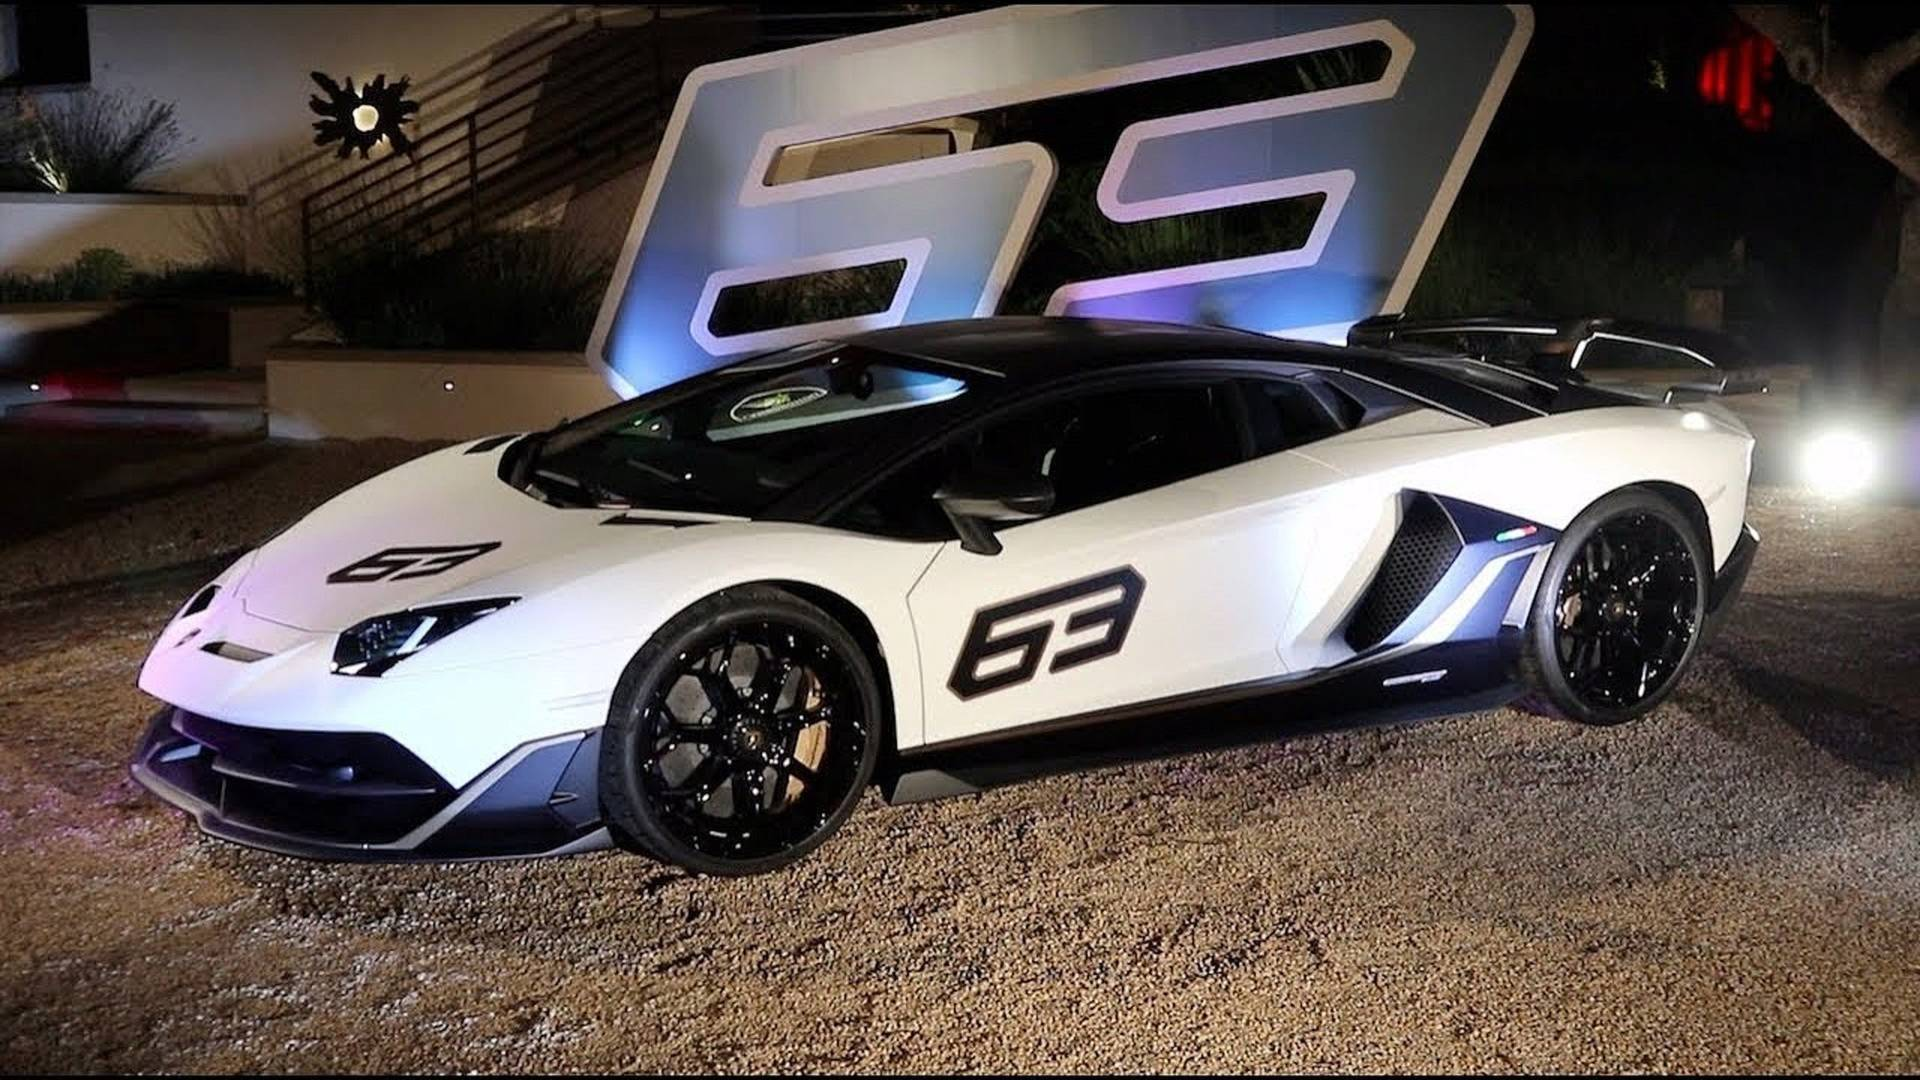 Lamborghini Aventador Svj 63 Looks Wild In Video Debut